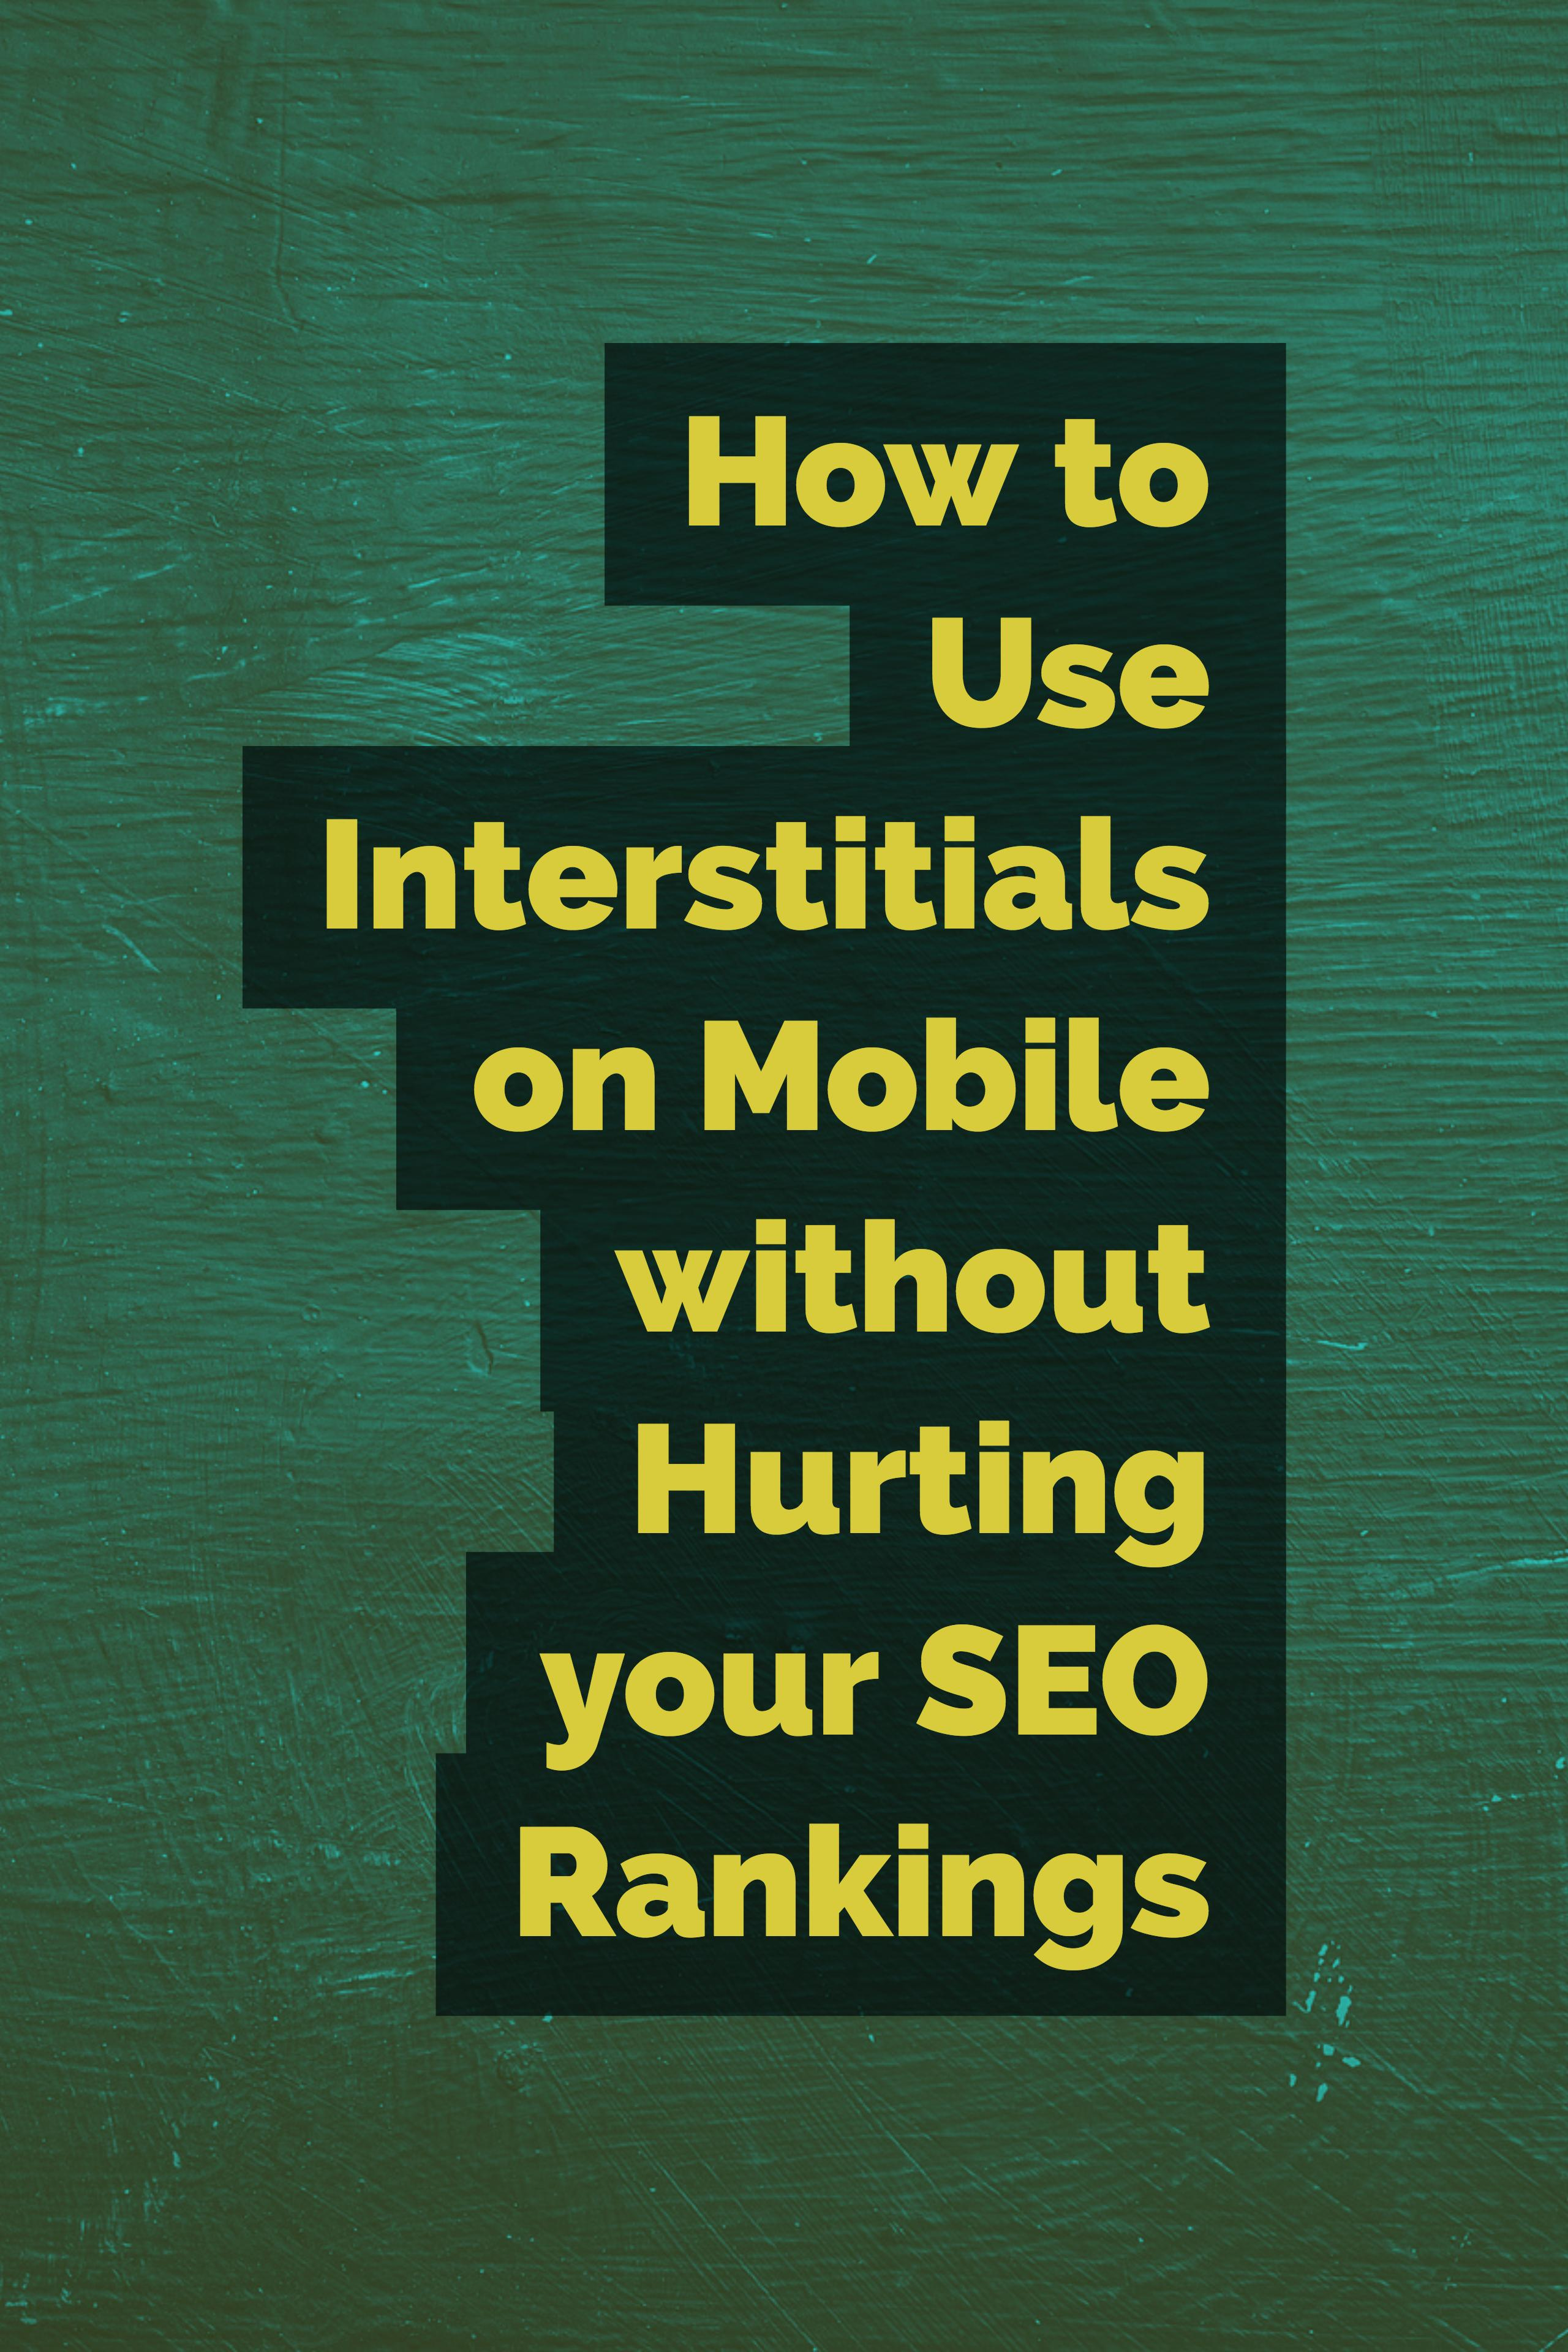 How to Use Interstitials on Mobile Devices without Hurting Your SEO Rankings.